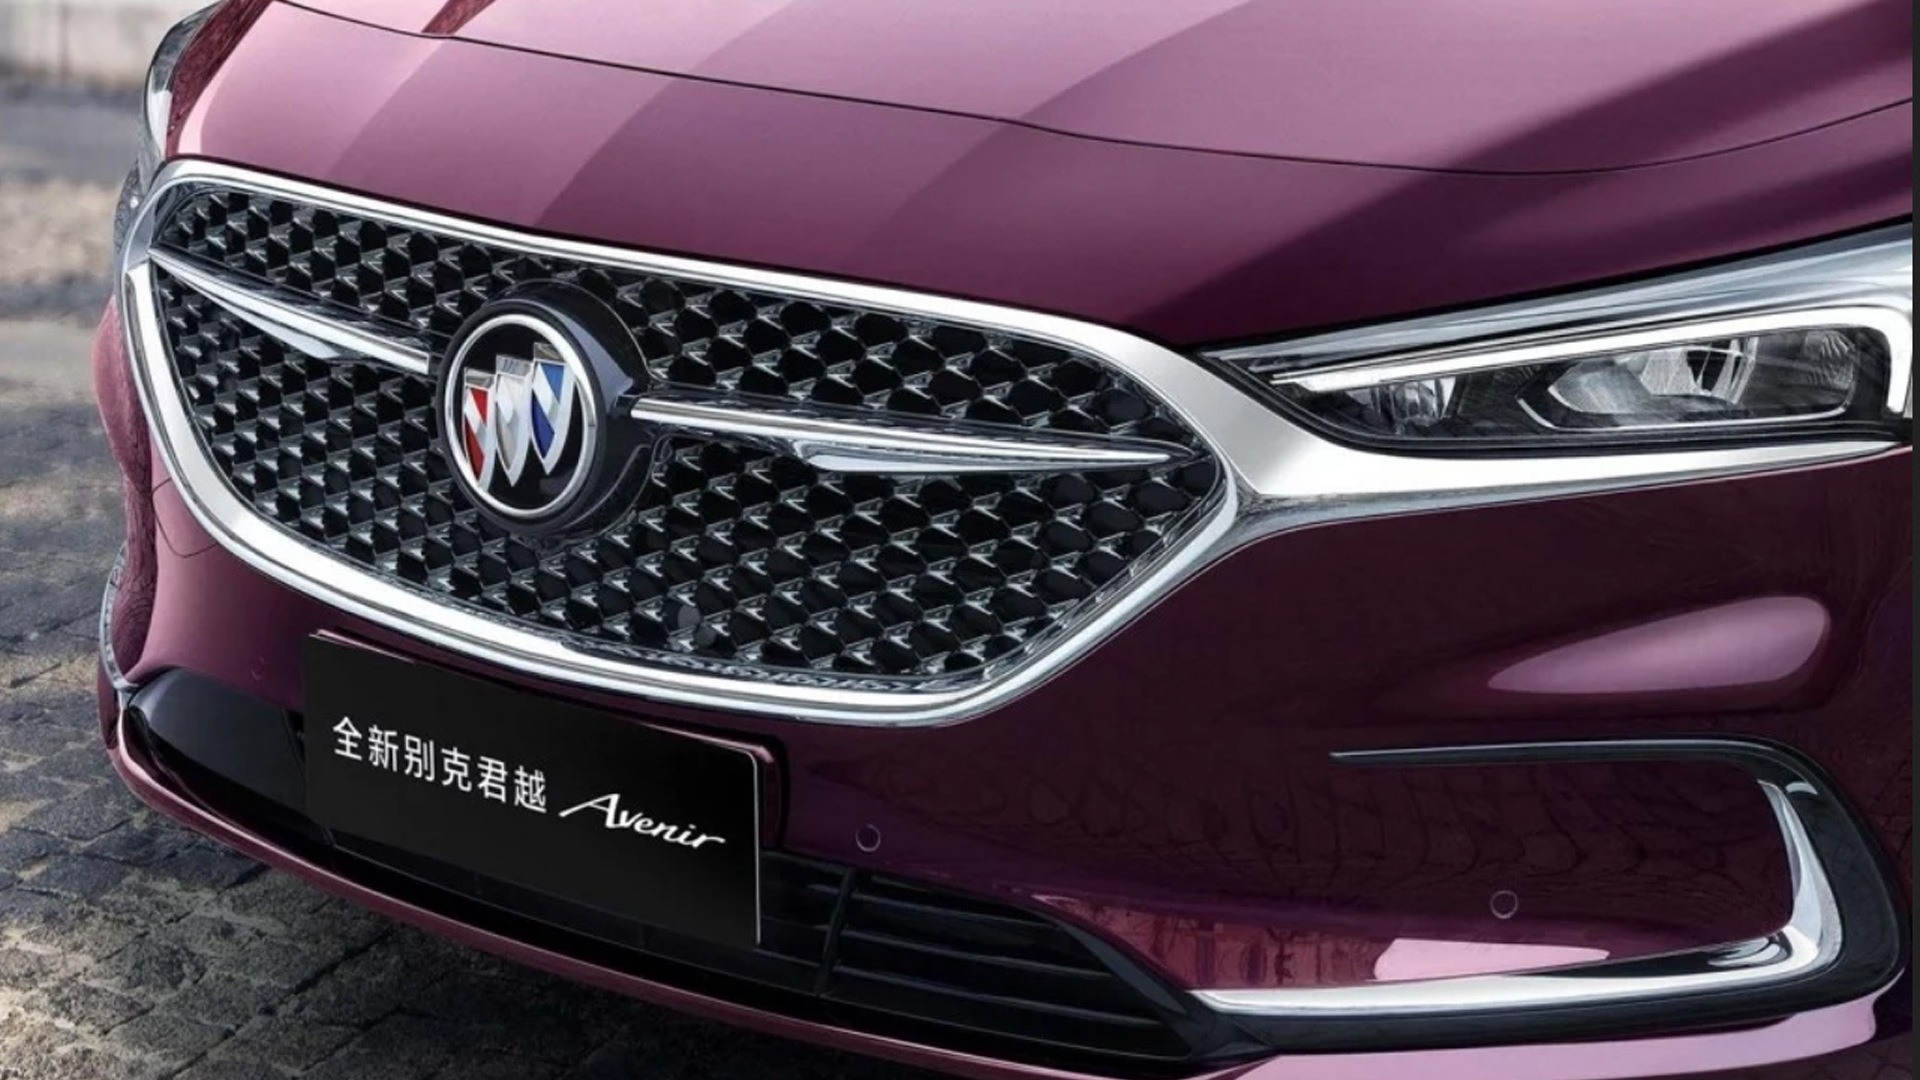 2020 Buick Lacrosse Made Handsome Just As It's Dropped In Us Picture Of A 2022 Buick Lacrosse